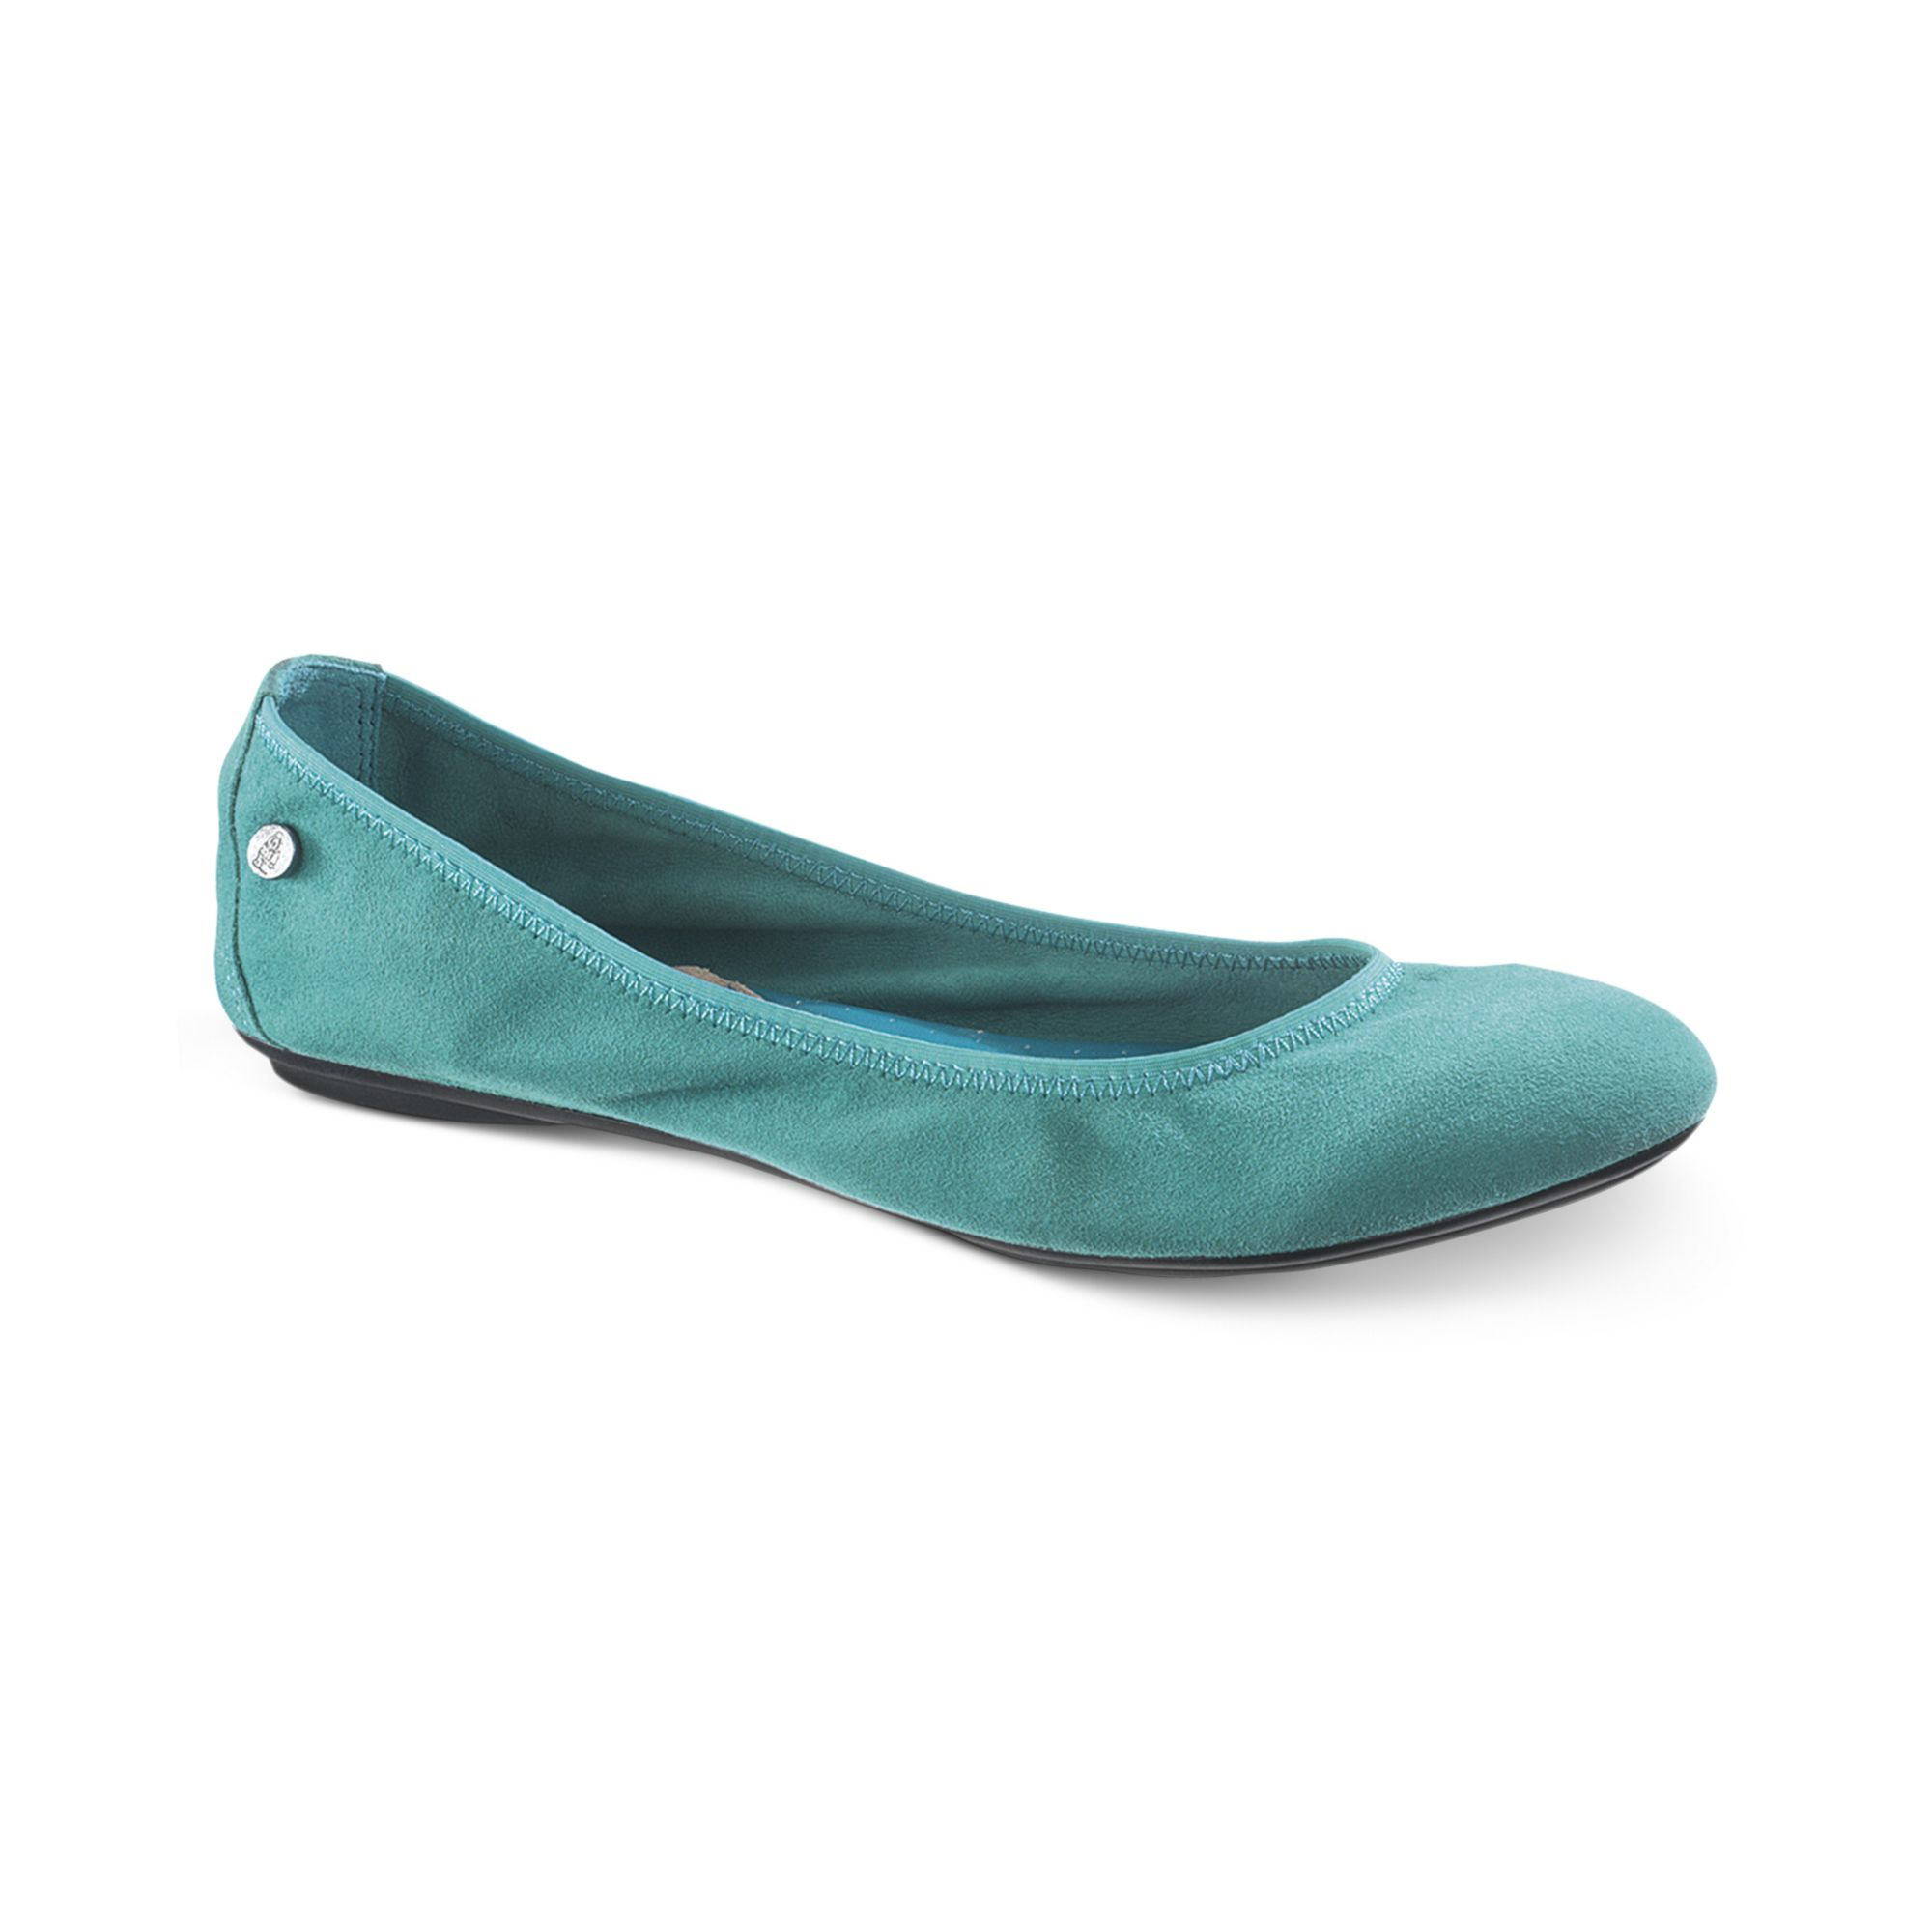 19e3b446c5a Lyst - Hush Puppies Womens Chaste Ballet Flats in Blue